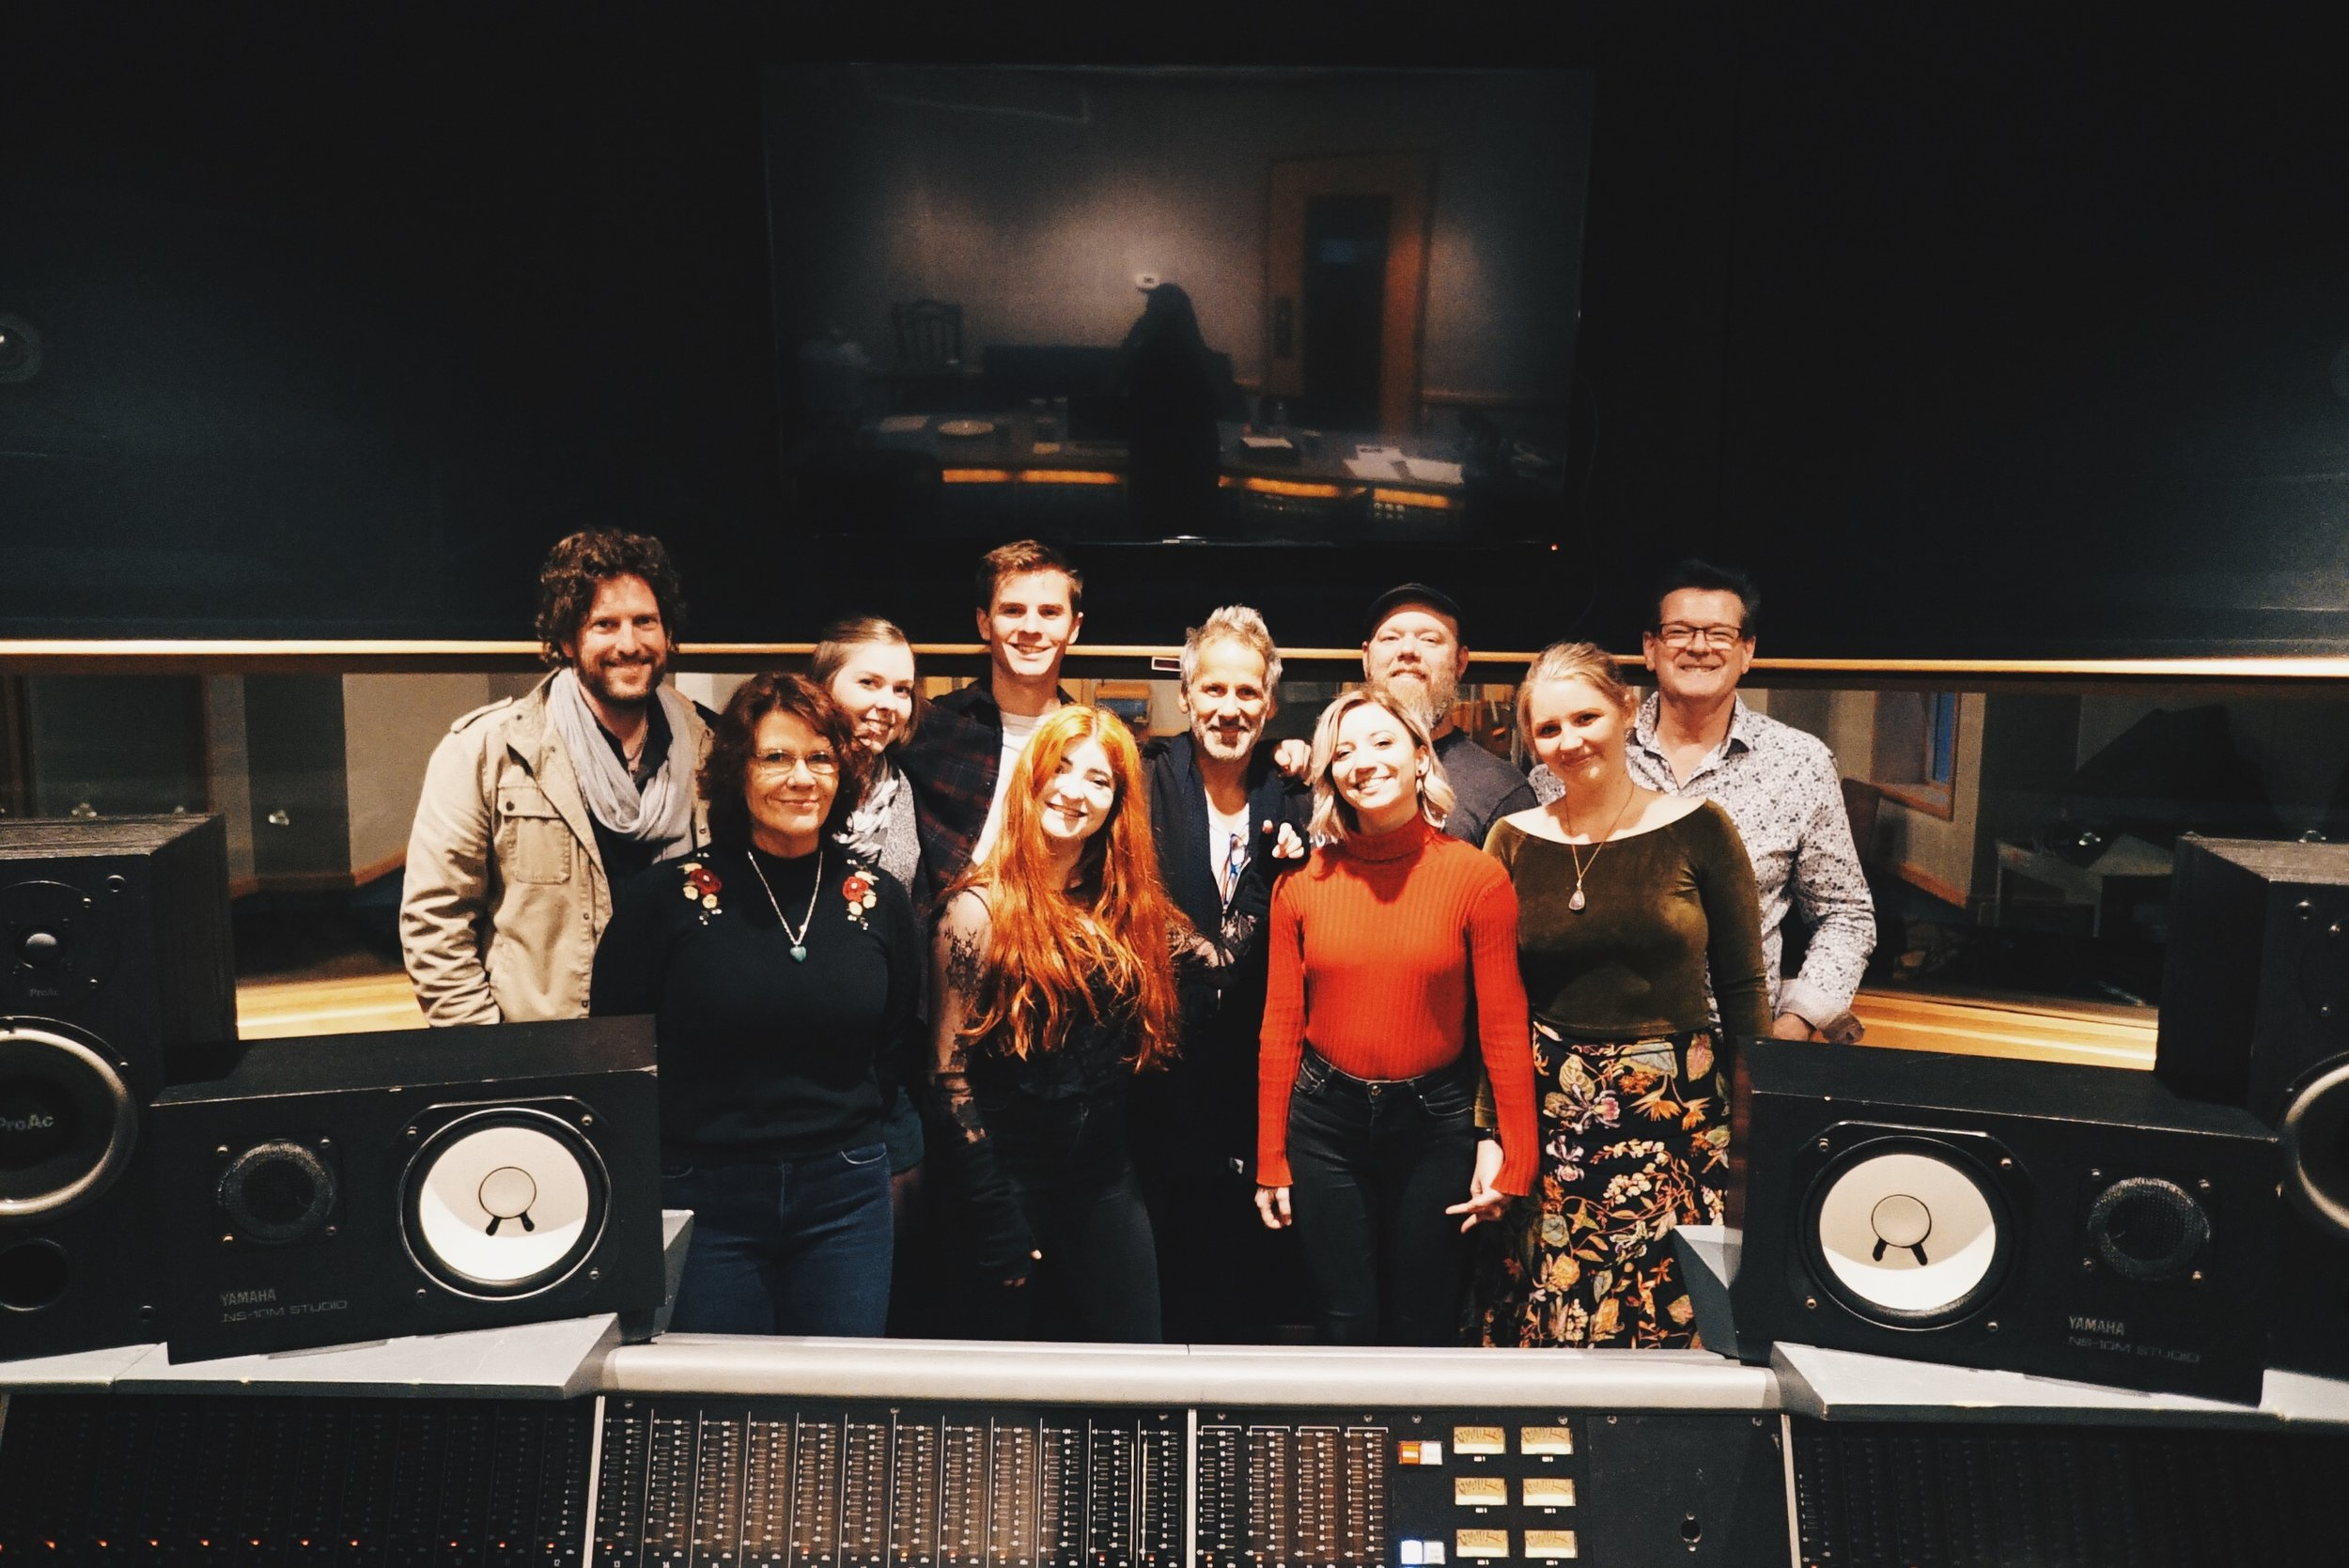 This photo was taken after a full day of recording and 5 amazing songs down with this legendary team of session musicians led by ace producer Scott Gerow at Ocean Way Studios.